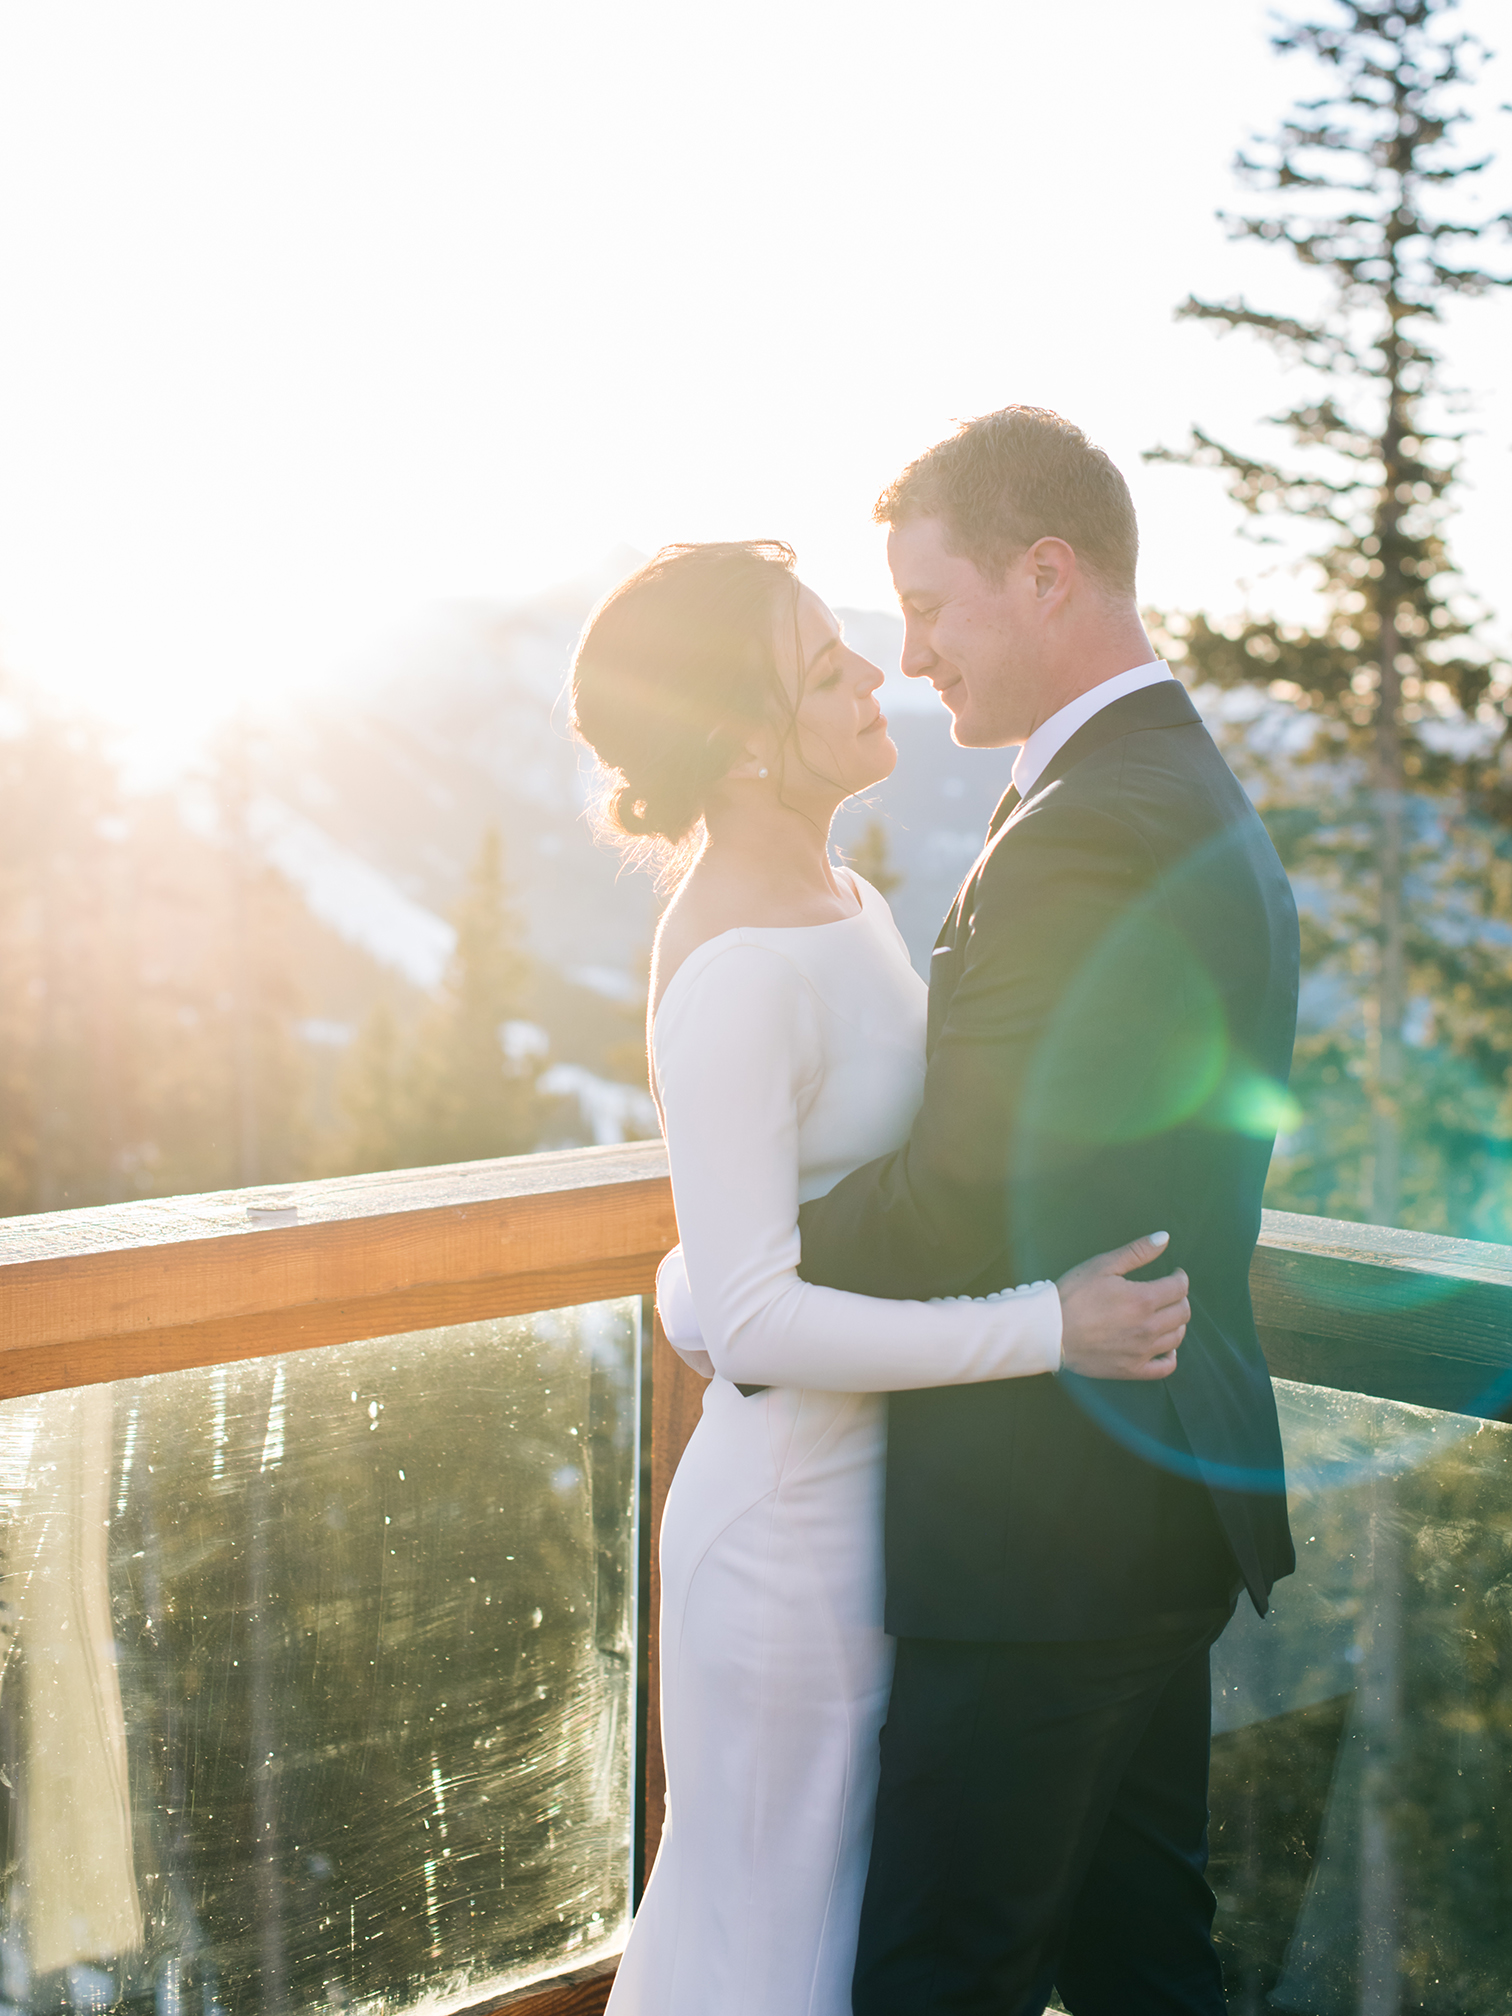 Telluride Wedding, Colorado Destination Wedding, Colorado Photographer, Colorado Wedding Photography, Sun-Kissed Kisses